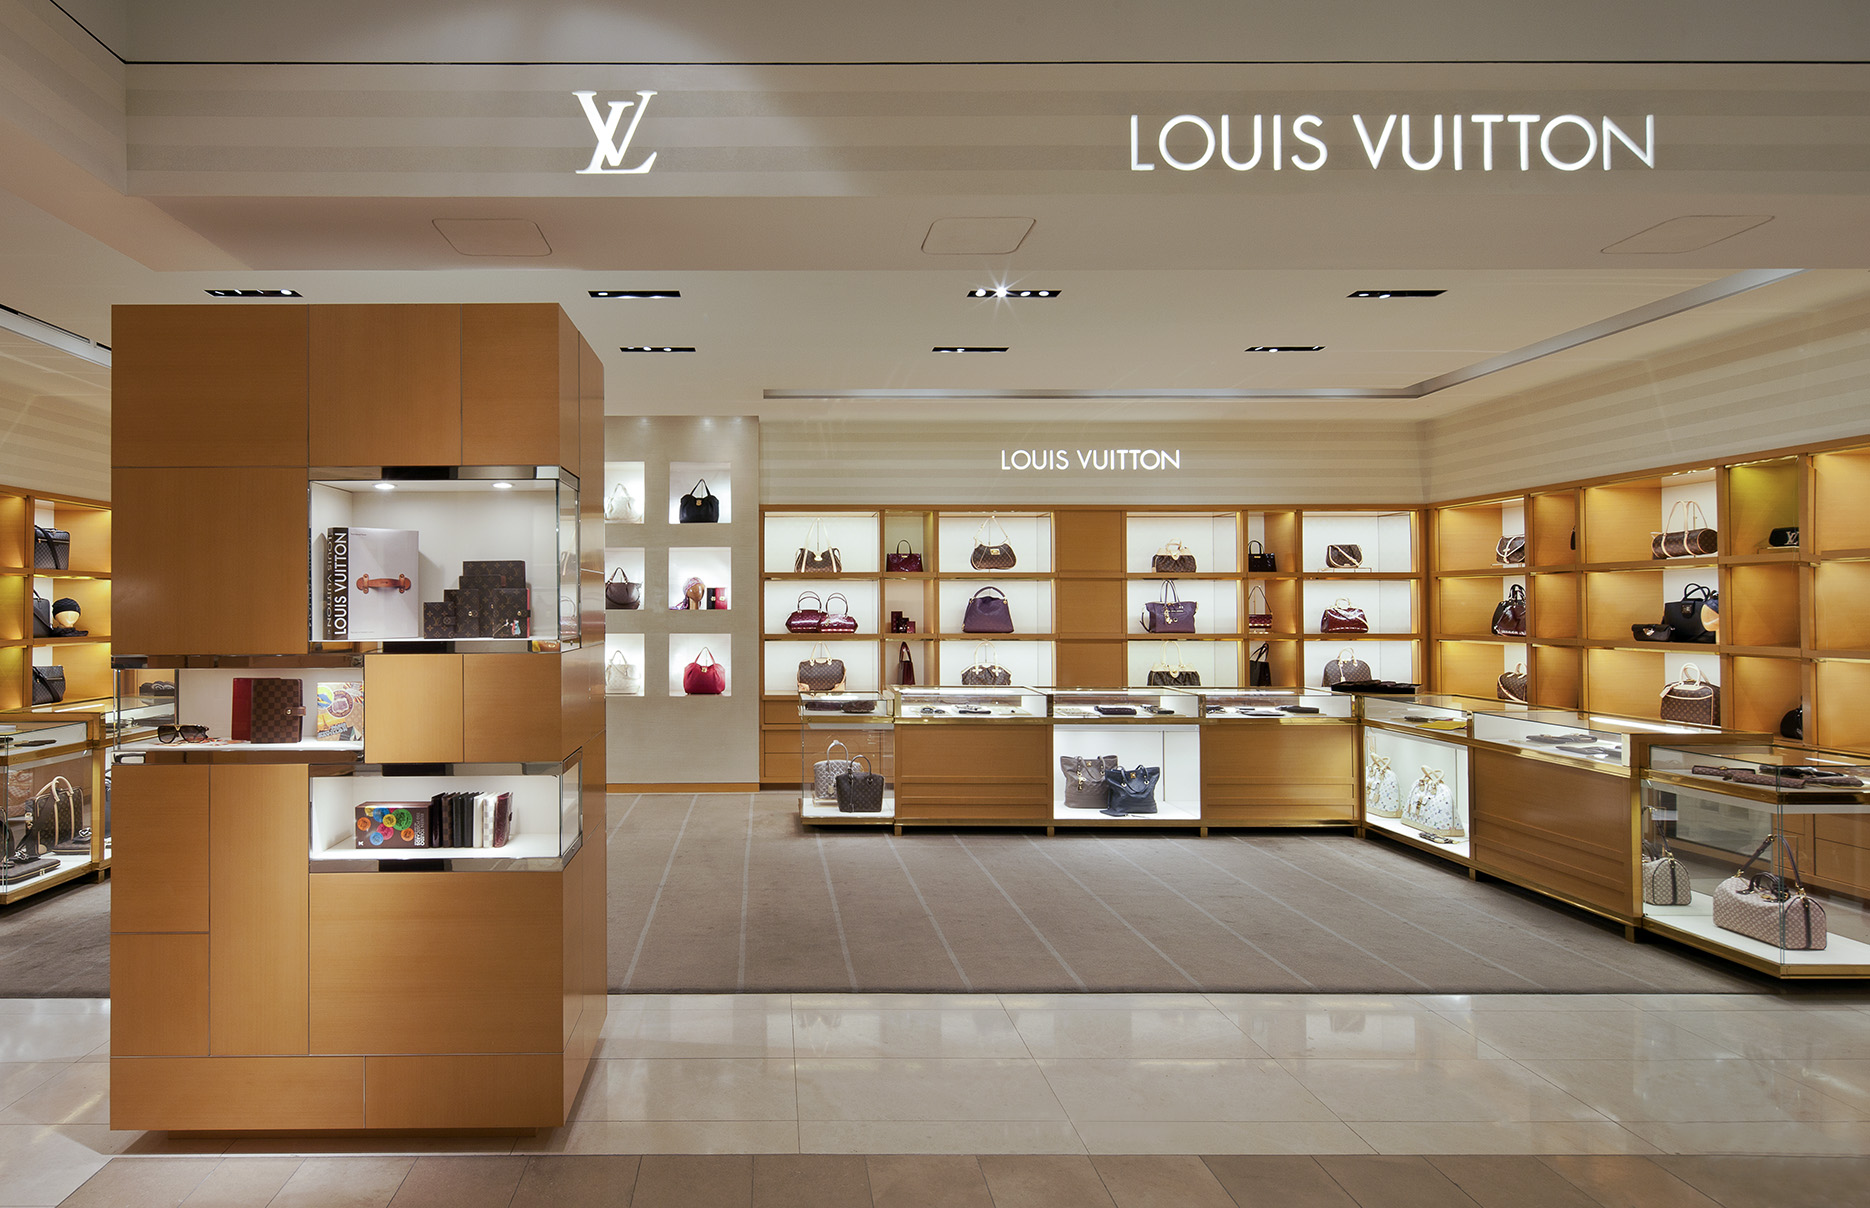 jeff-green-LouisVuitton-interior